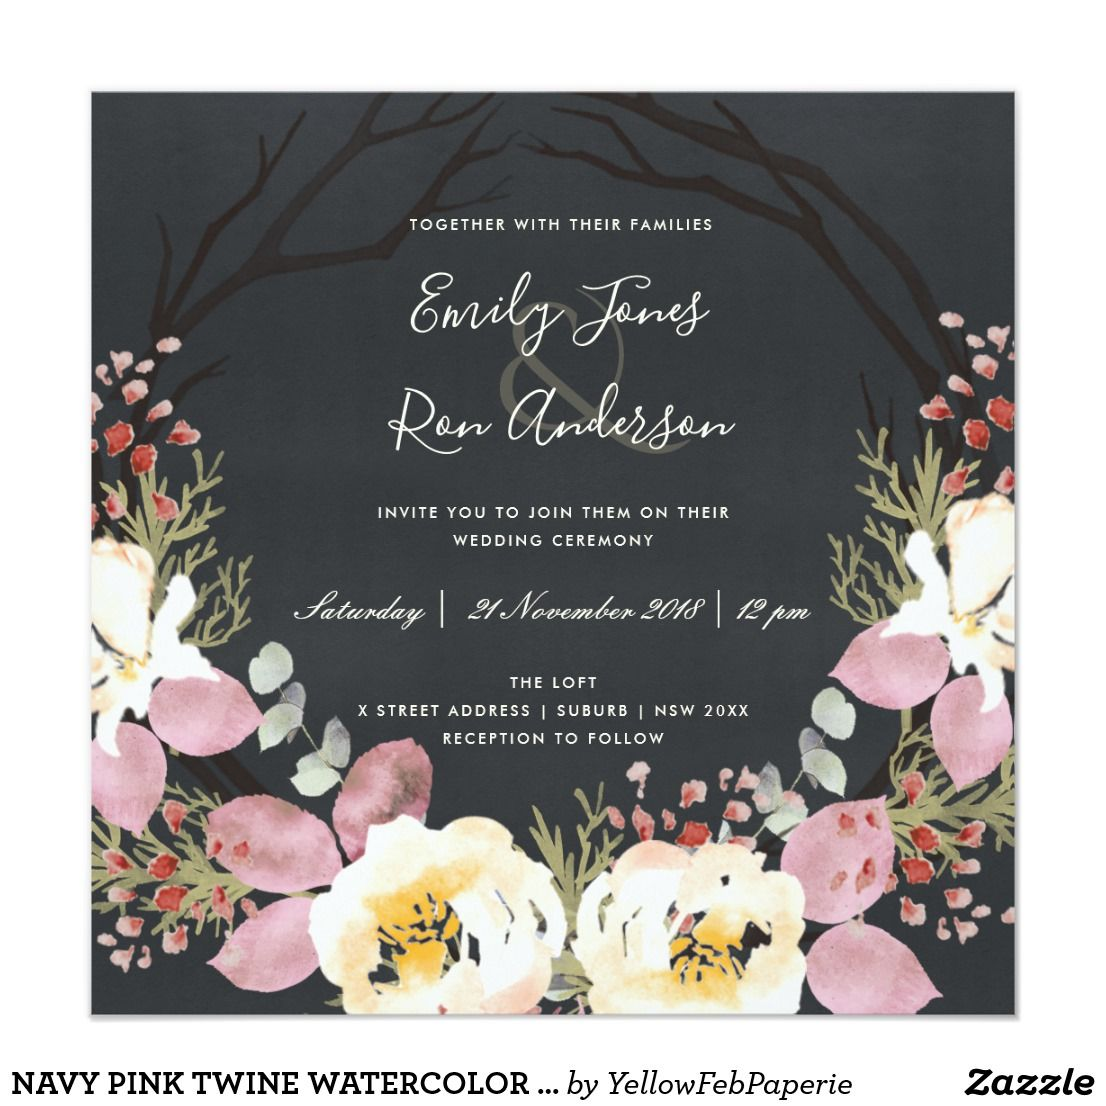 Wedding decorations with flowers november 2018 Navy pink twine watercolor floral wreath wedding card  Floral wreath